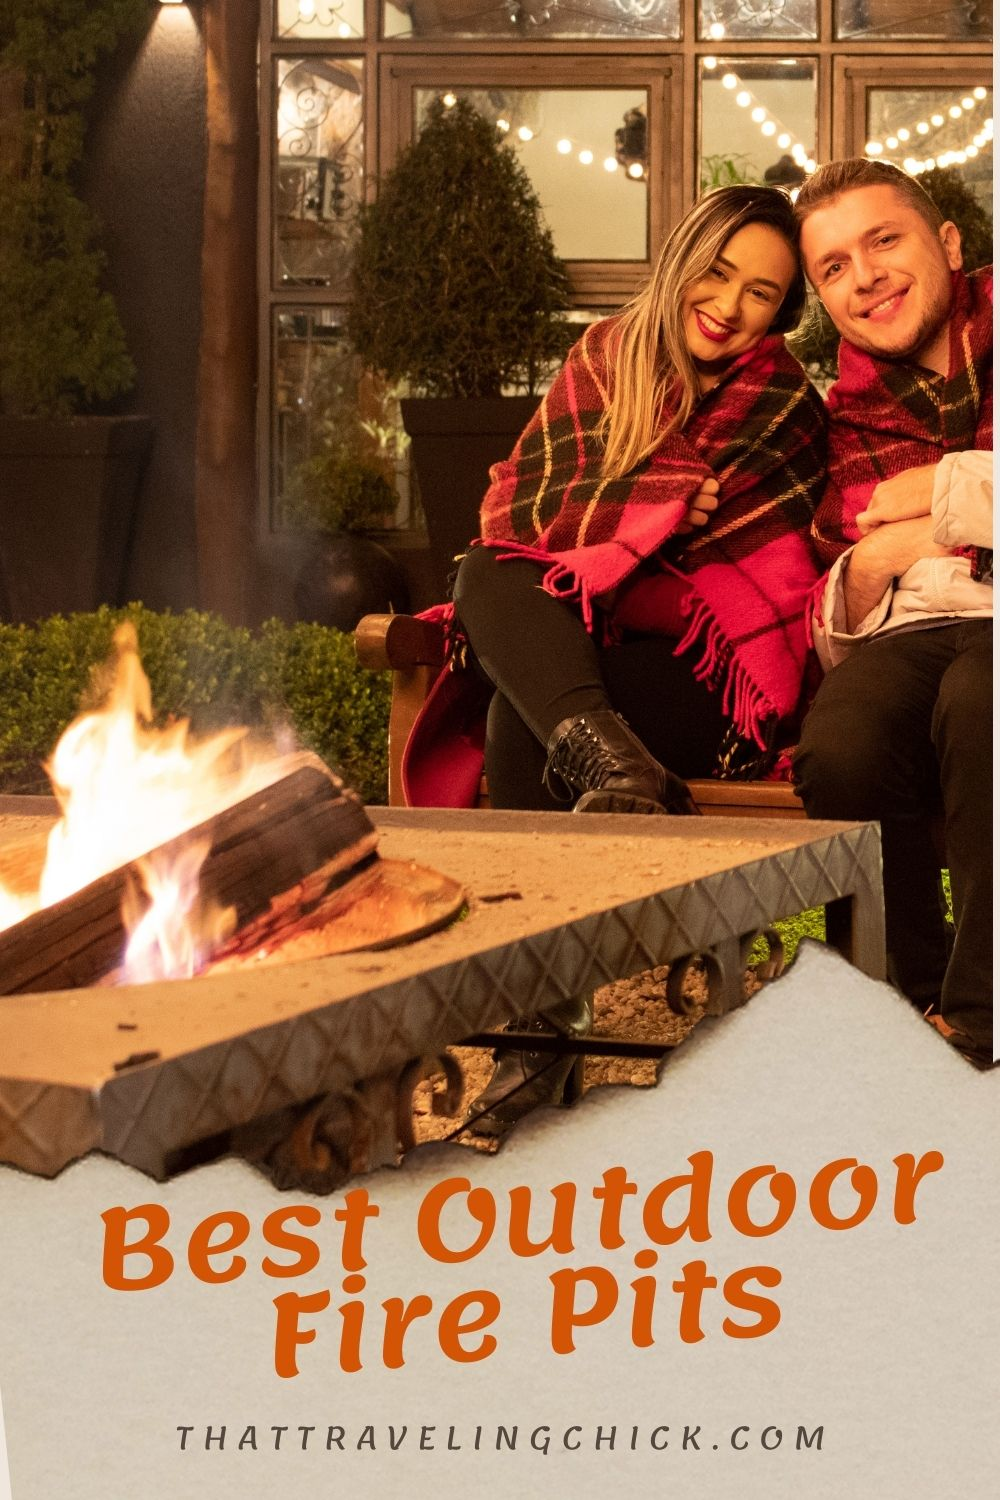 Best Outdoor Fire Pits #outdoorfirepits #firepits